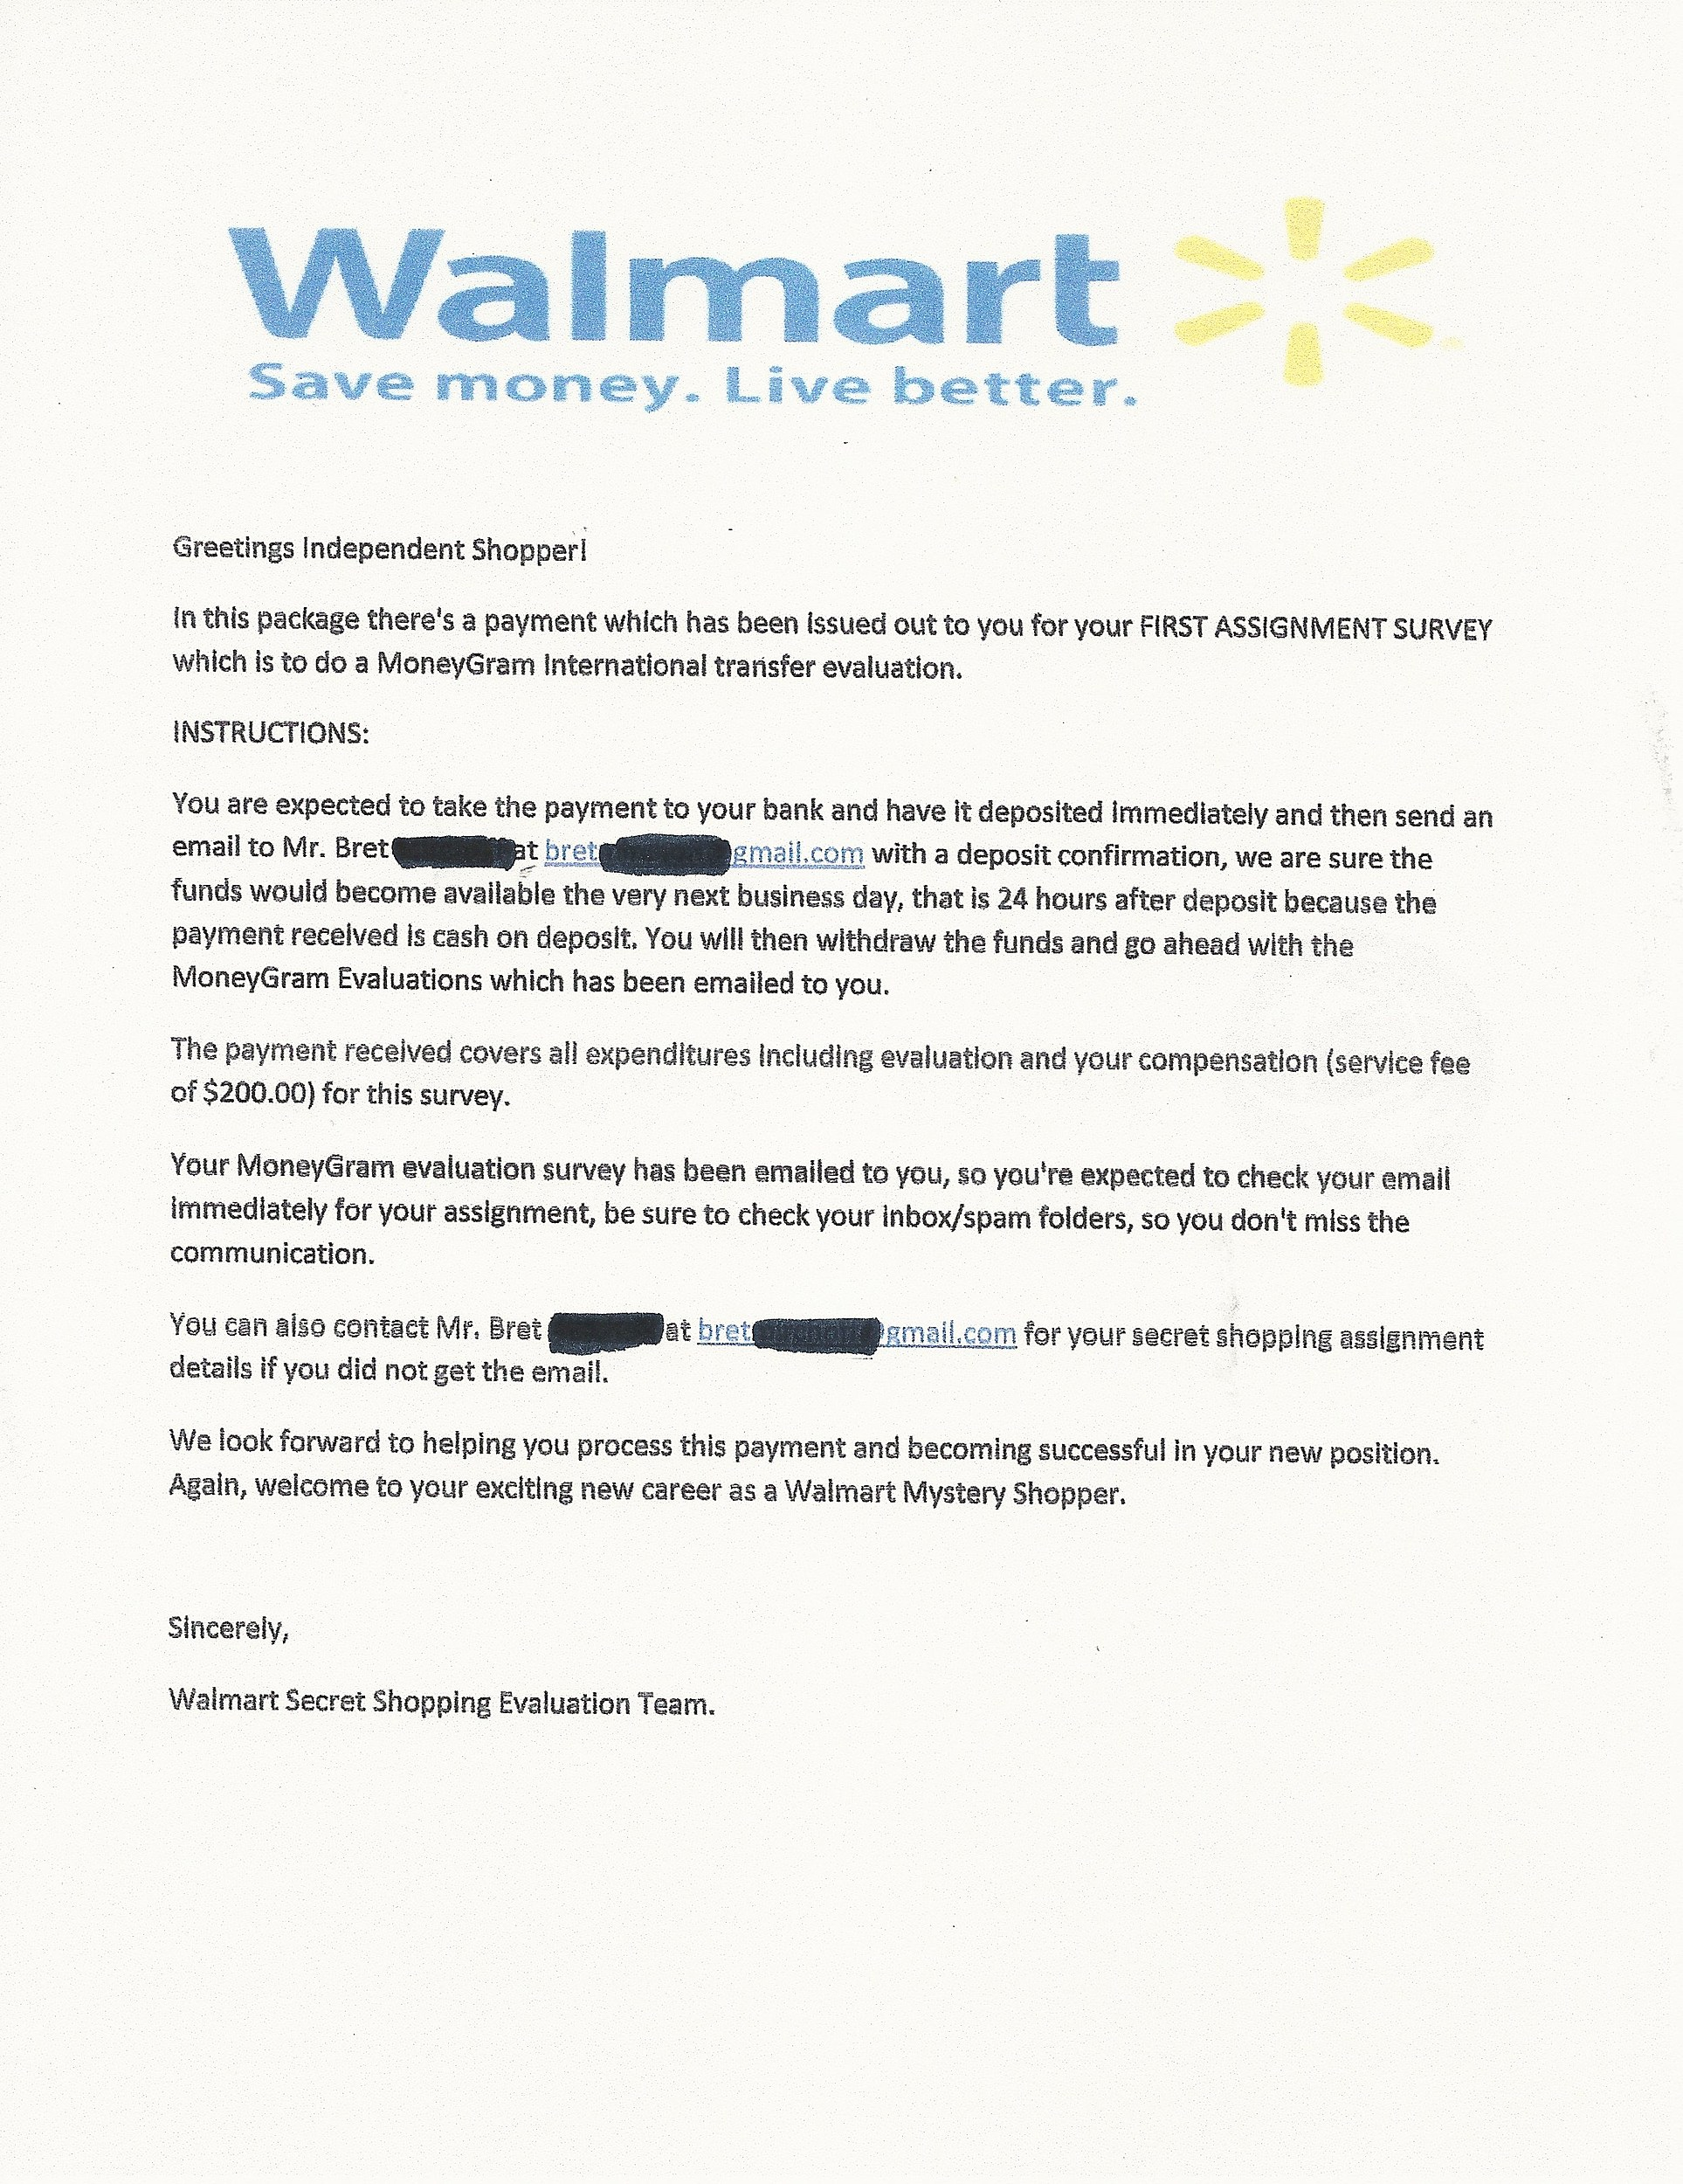 Don't Get Scammed via the Mail By This 'Secret Shopper' Job